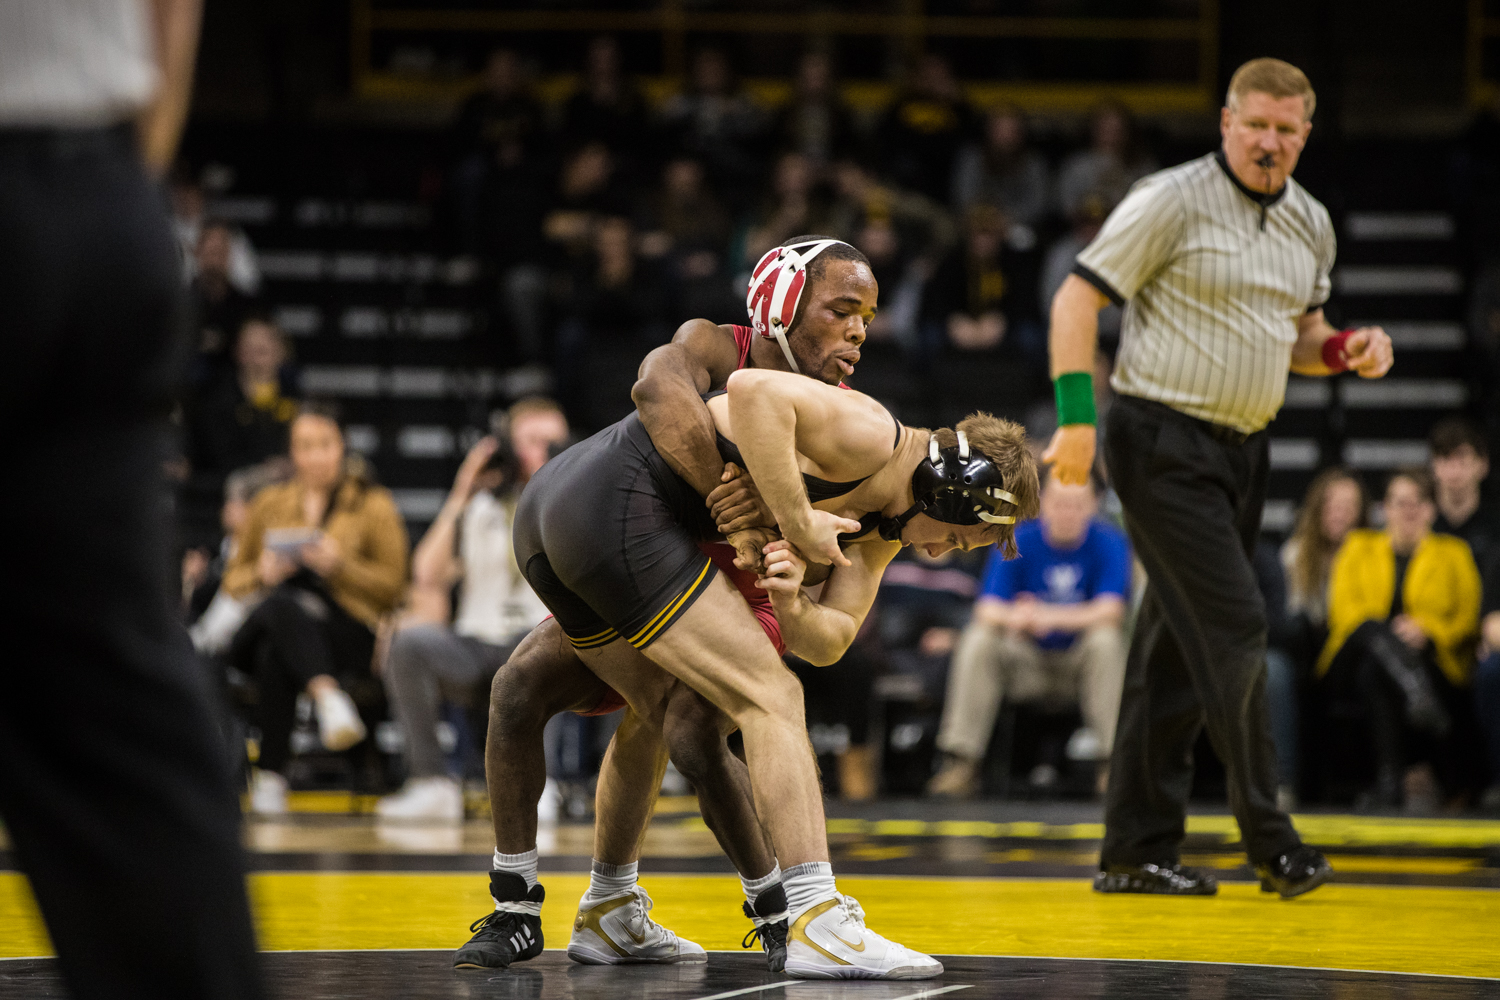 Iowa%27s+No.+2+Spencer+Lee+wrestles+Indiana%27s+Elijah+Oliver+at+125lb+during+a+wrestling+match+between+Iowa+and+Indiana+at+Carver-Hawkeye+Arena+on+Friday%2C+February+15%2C+2019.+The+Hawkeyes%2C+celebrating+senior+night%2C+defeated+the+Hoosiers+37-9.